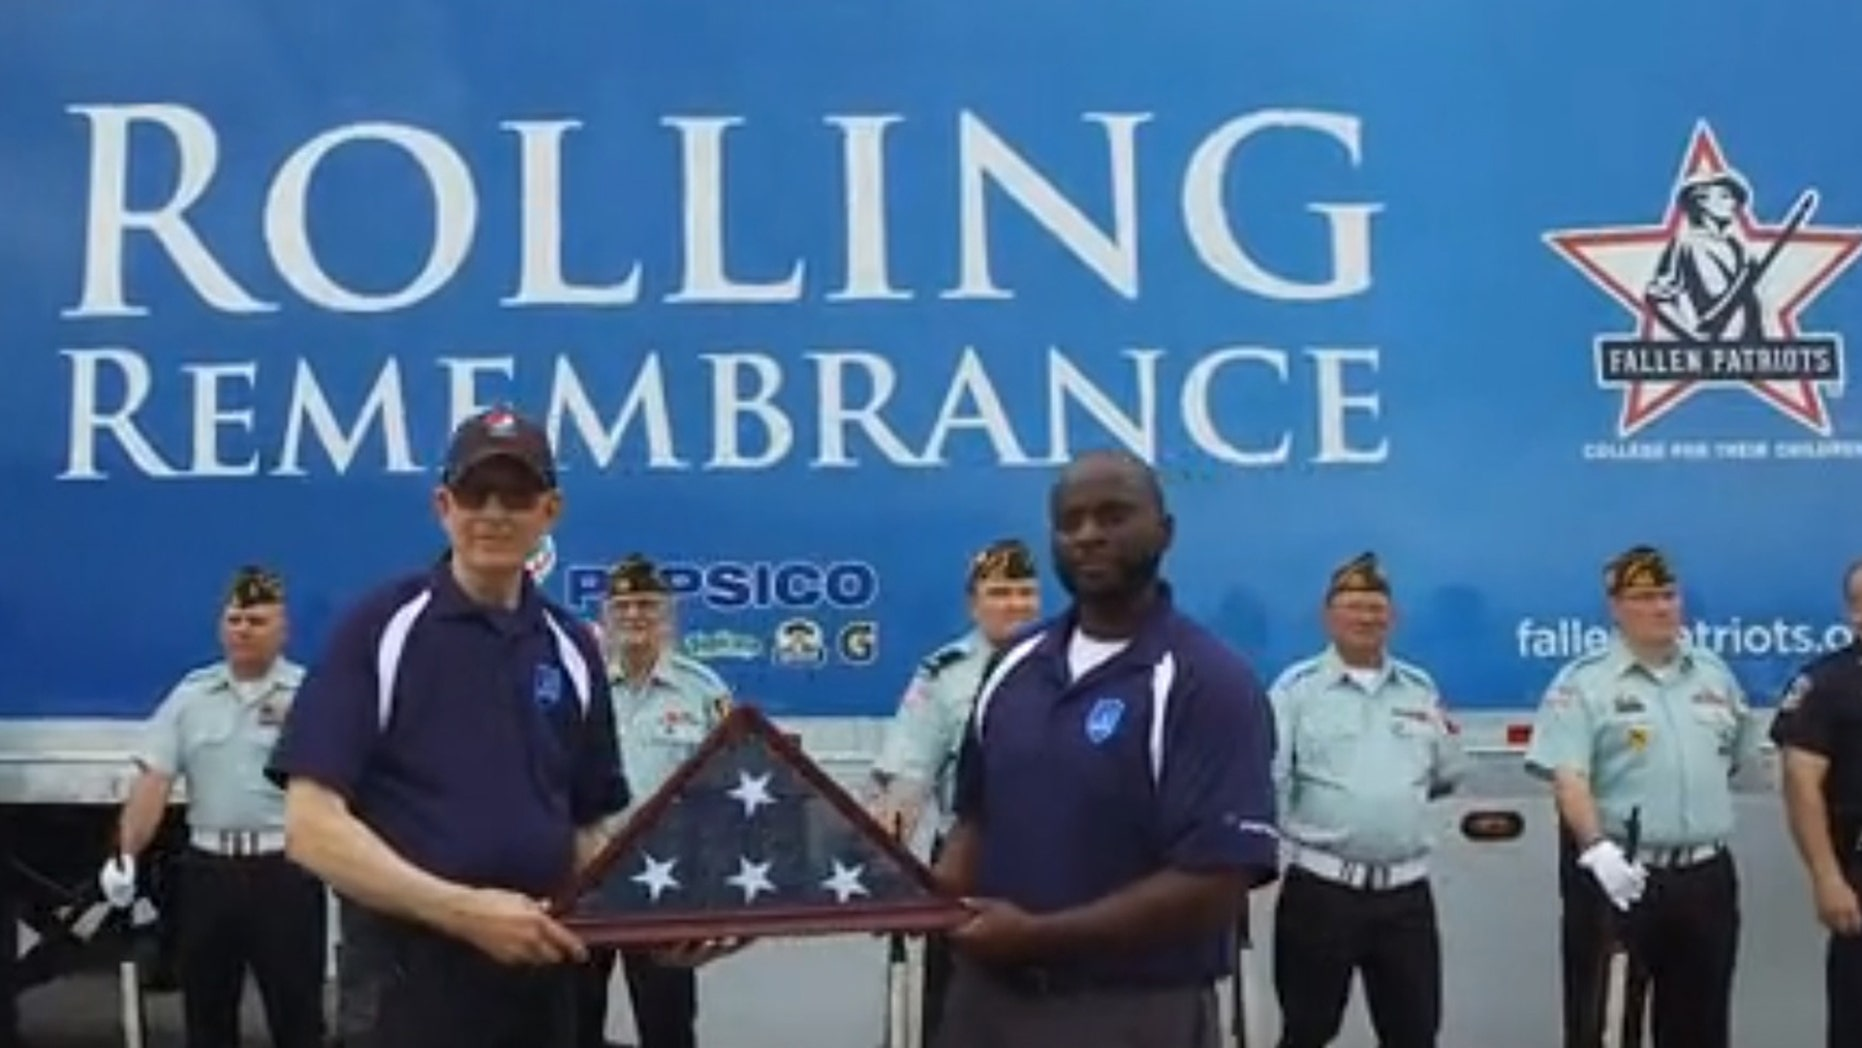 Rolling Remembrance, a partnership between PepsiCo and the Children of Fallen Patriots Foundation, had a ceremony in Bradenton, FL along the 8,000-mile cross-country relay to raise college scholarship funds for Gold Star children.